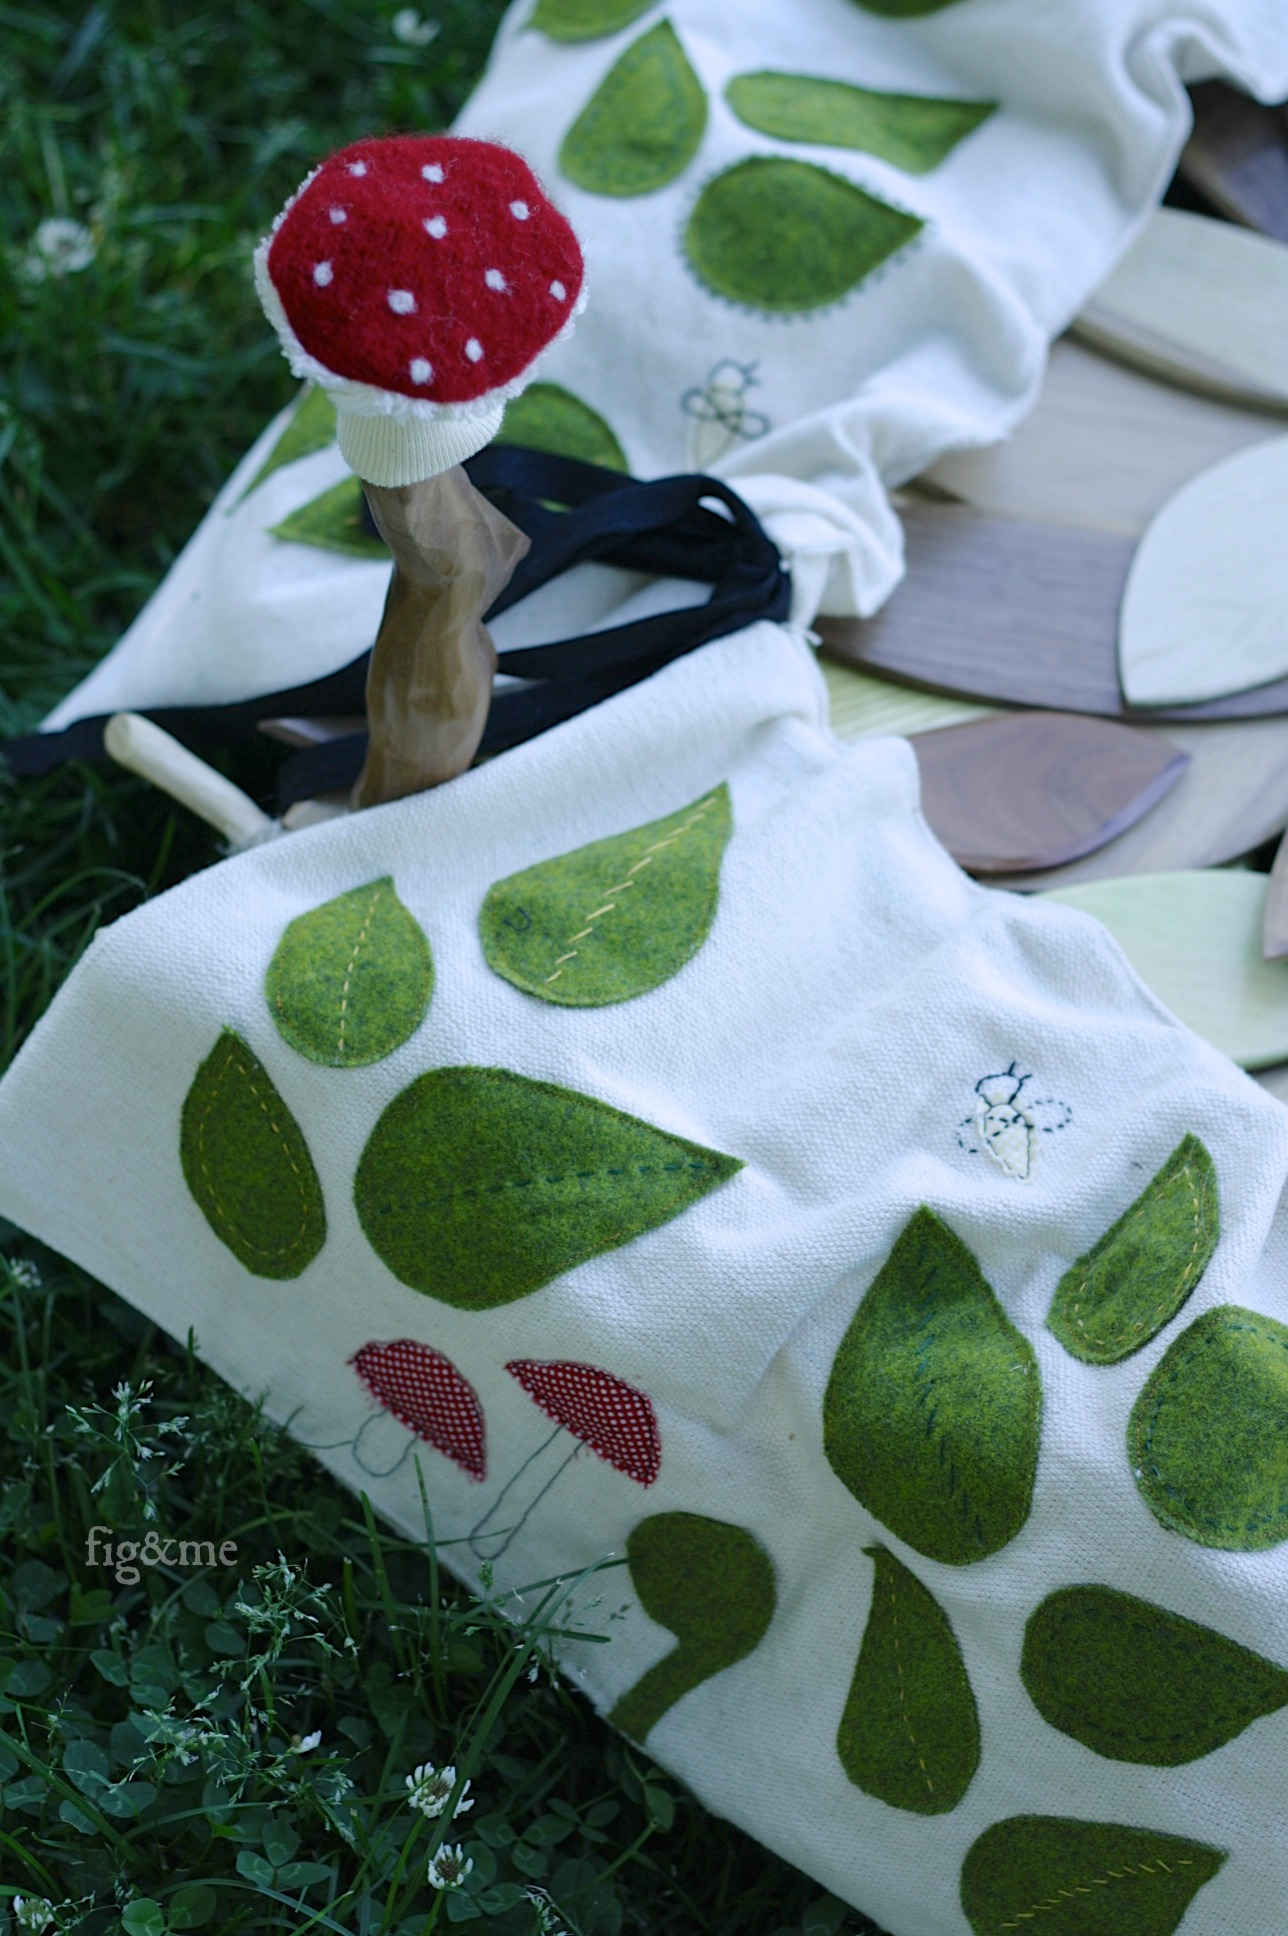 Appliqued leaves, mushrooms and chenille too! by Fig&me